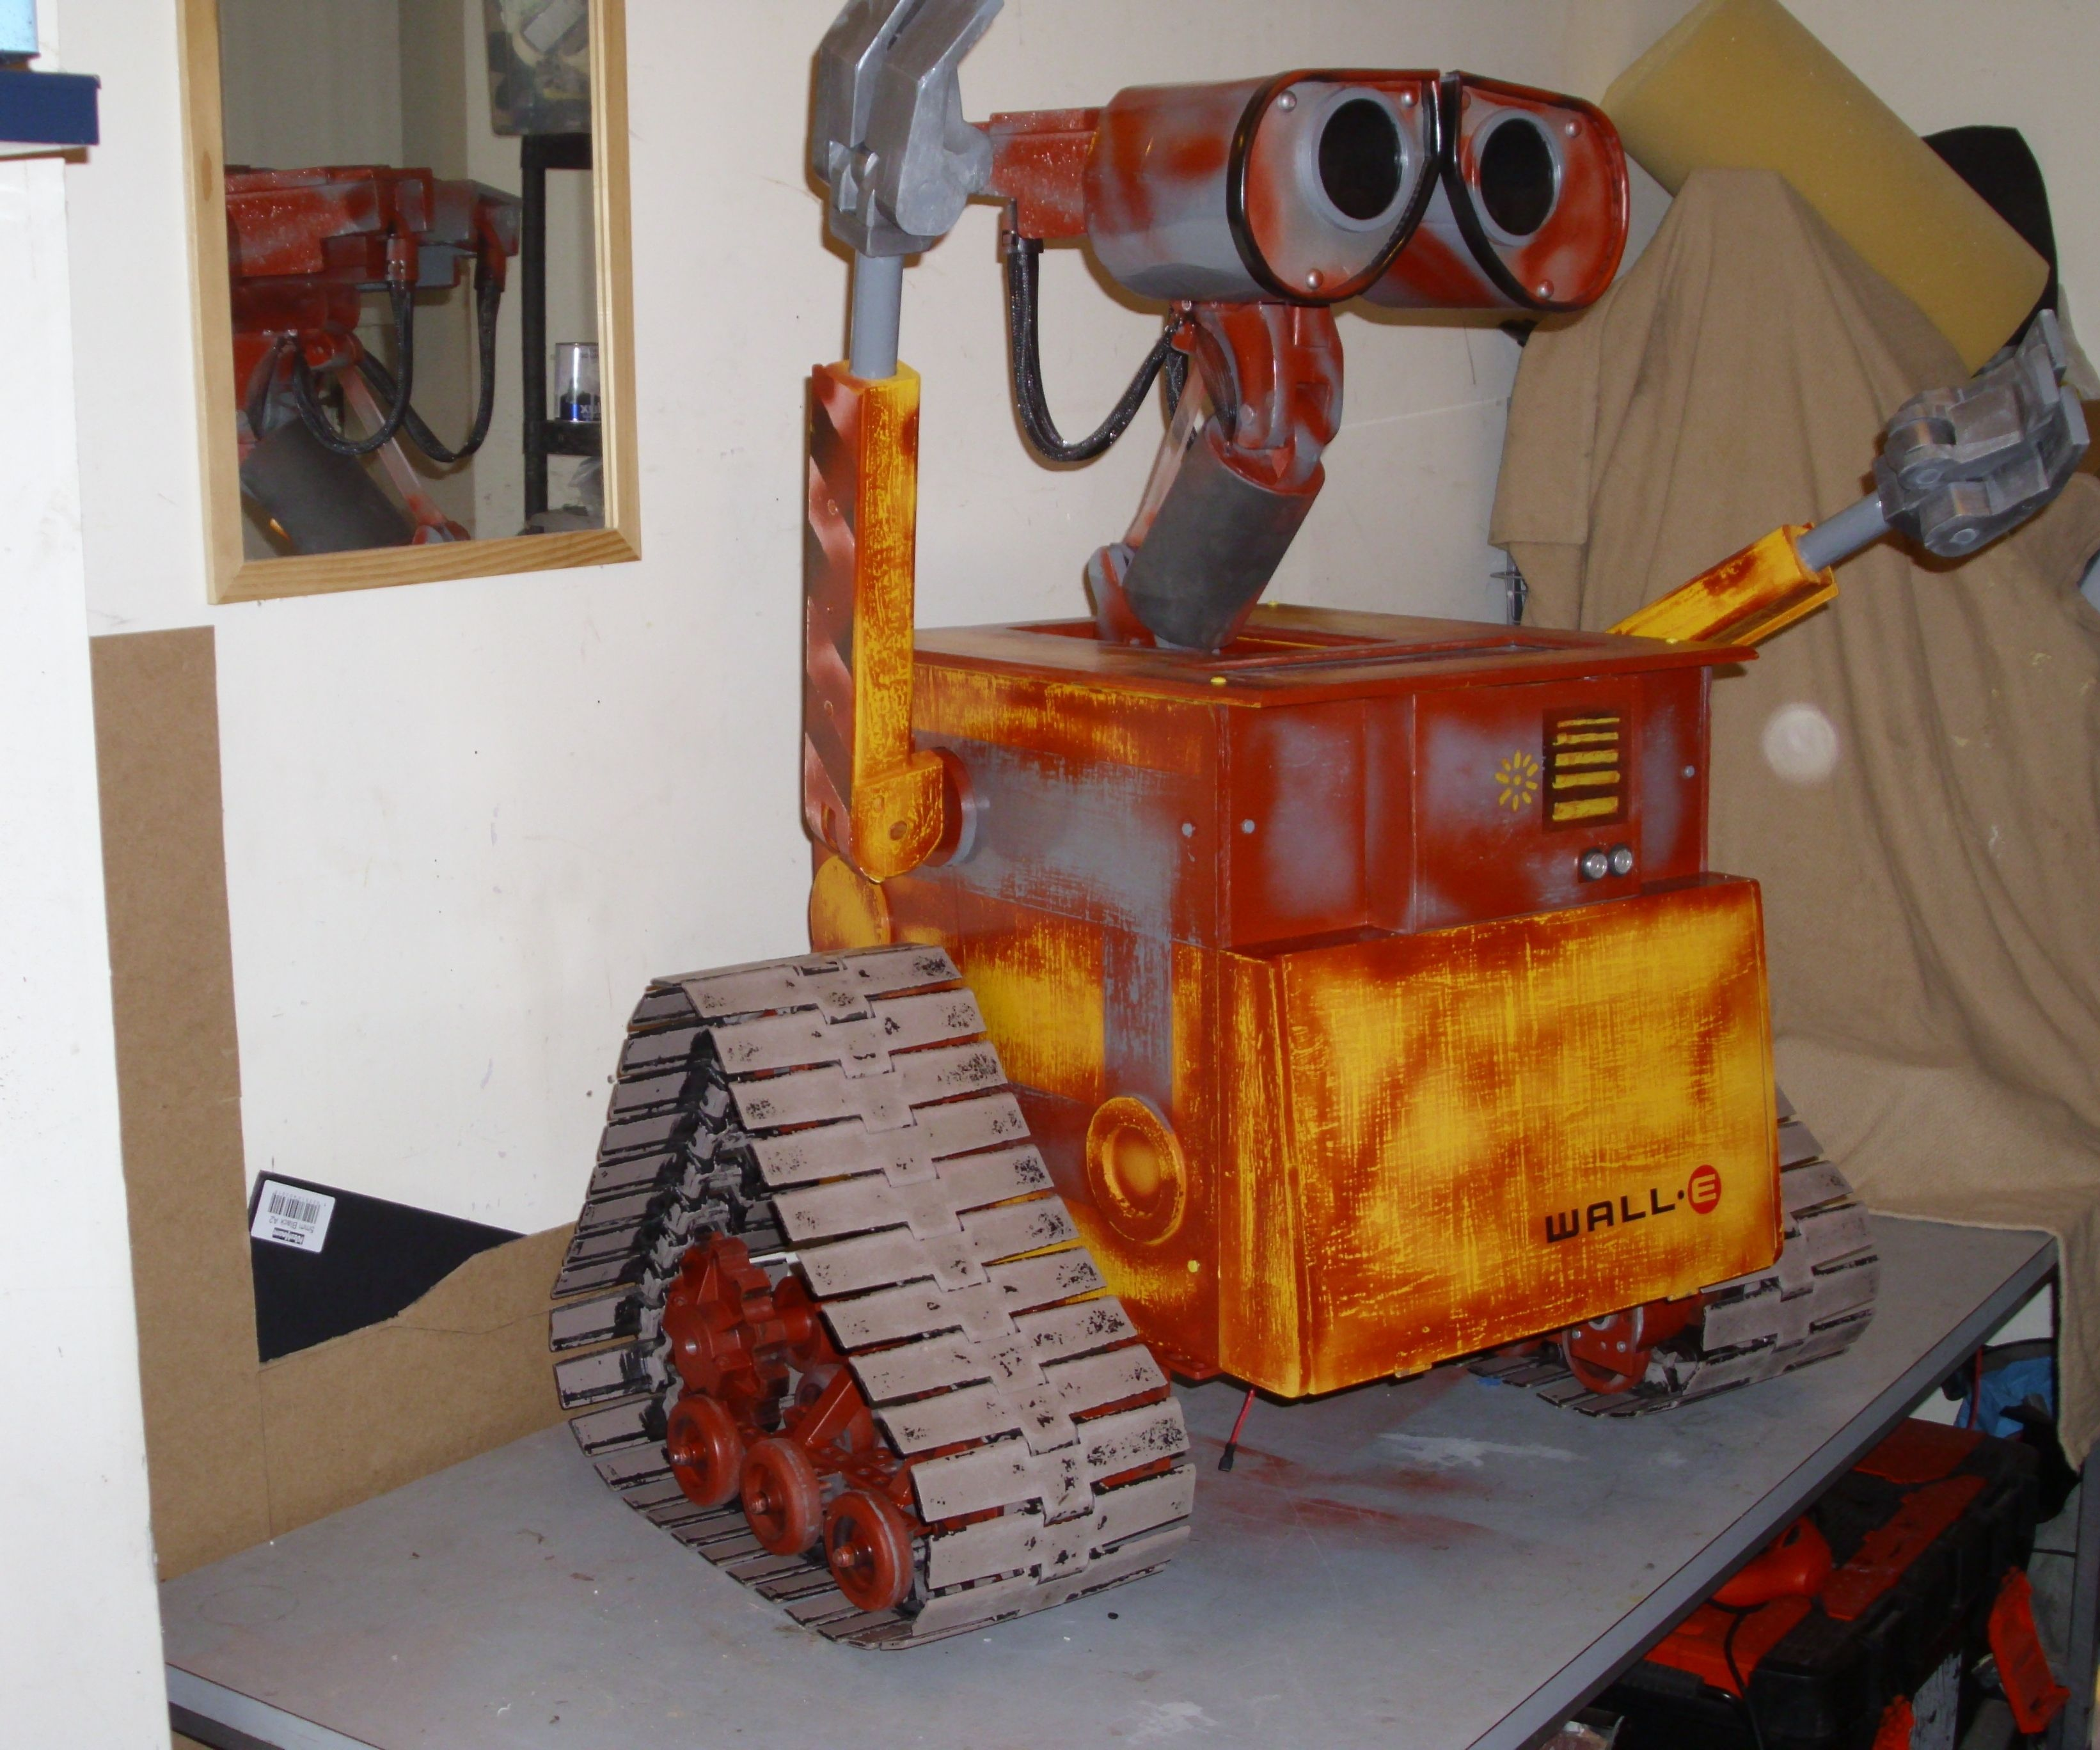 My own wall-e project distressed a bit now and looking great